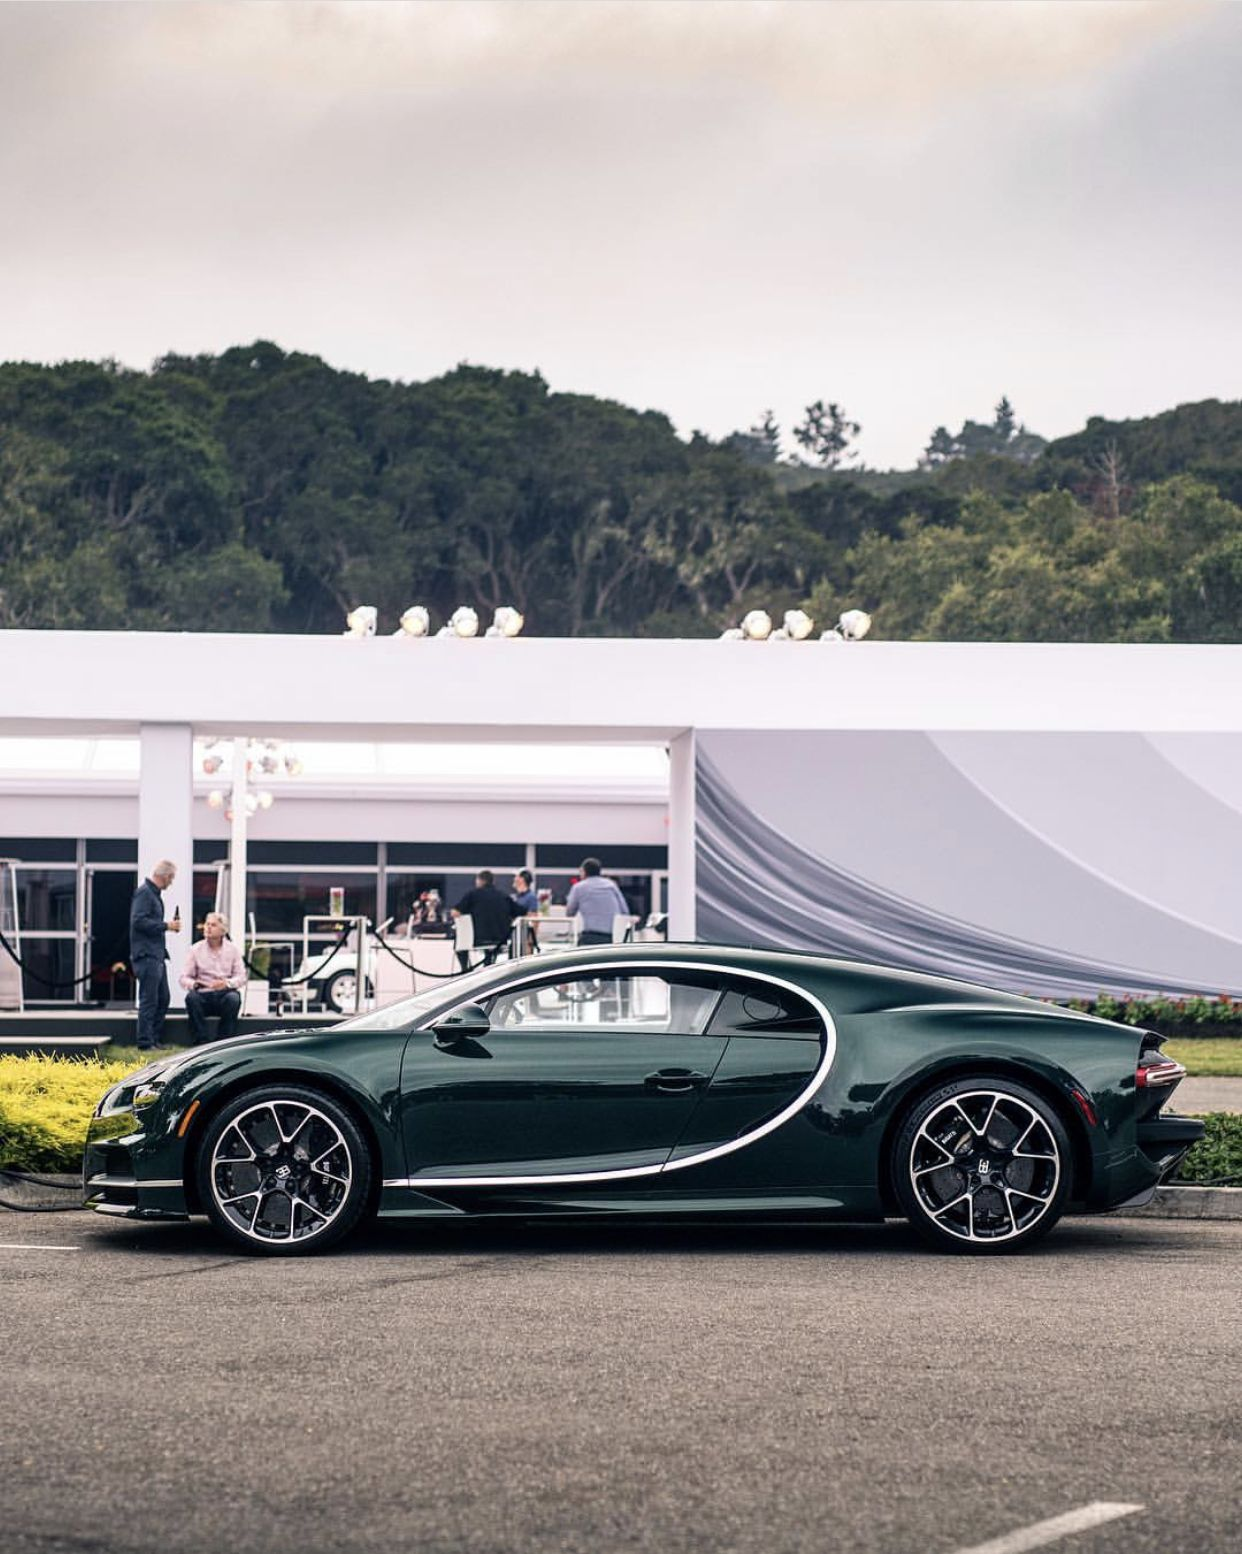 Bugatti Chiron In Fully Exposed Green Carbon Fiber Photo Taken By Zachbrehl On Instagram Bugatti Chiron Bugatti Car Photos